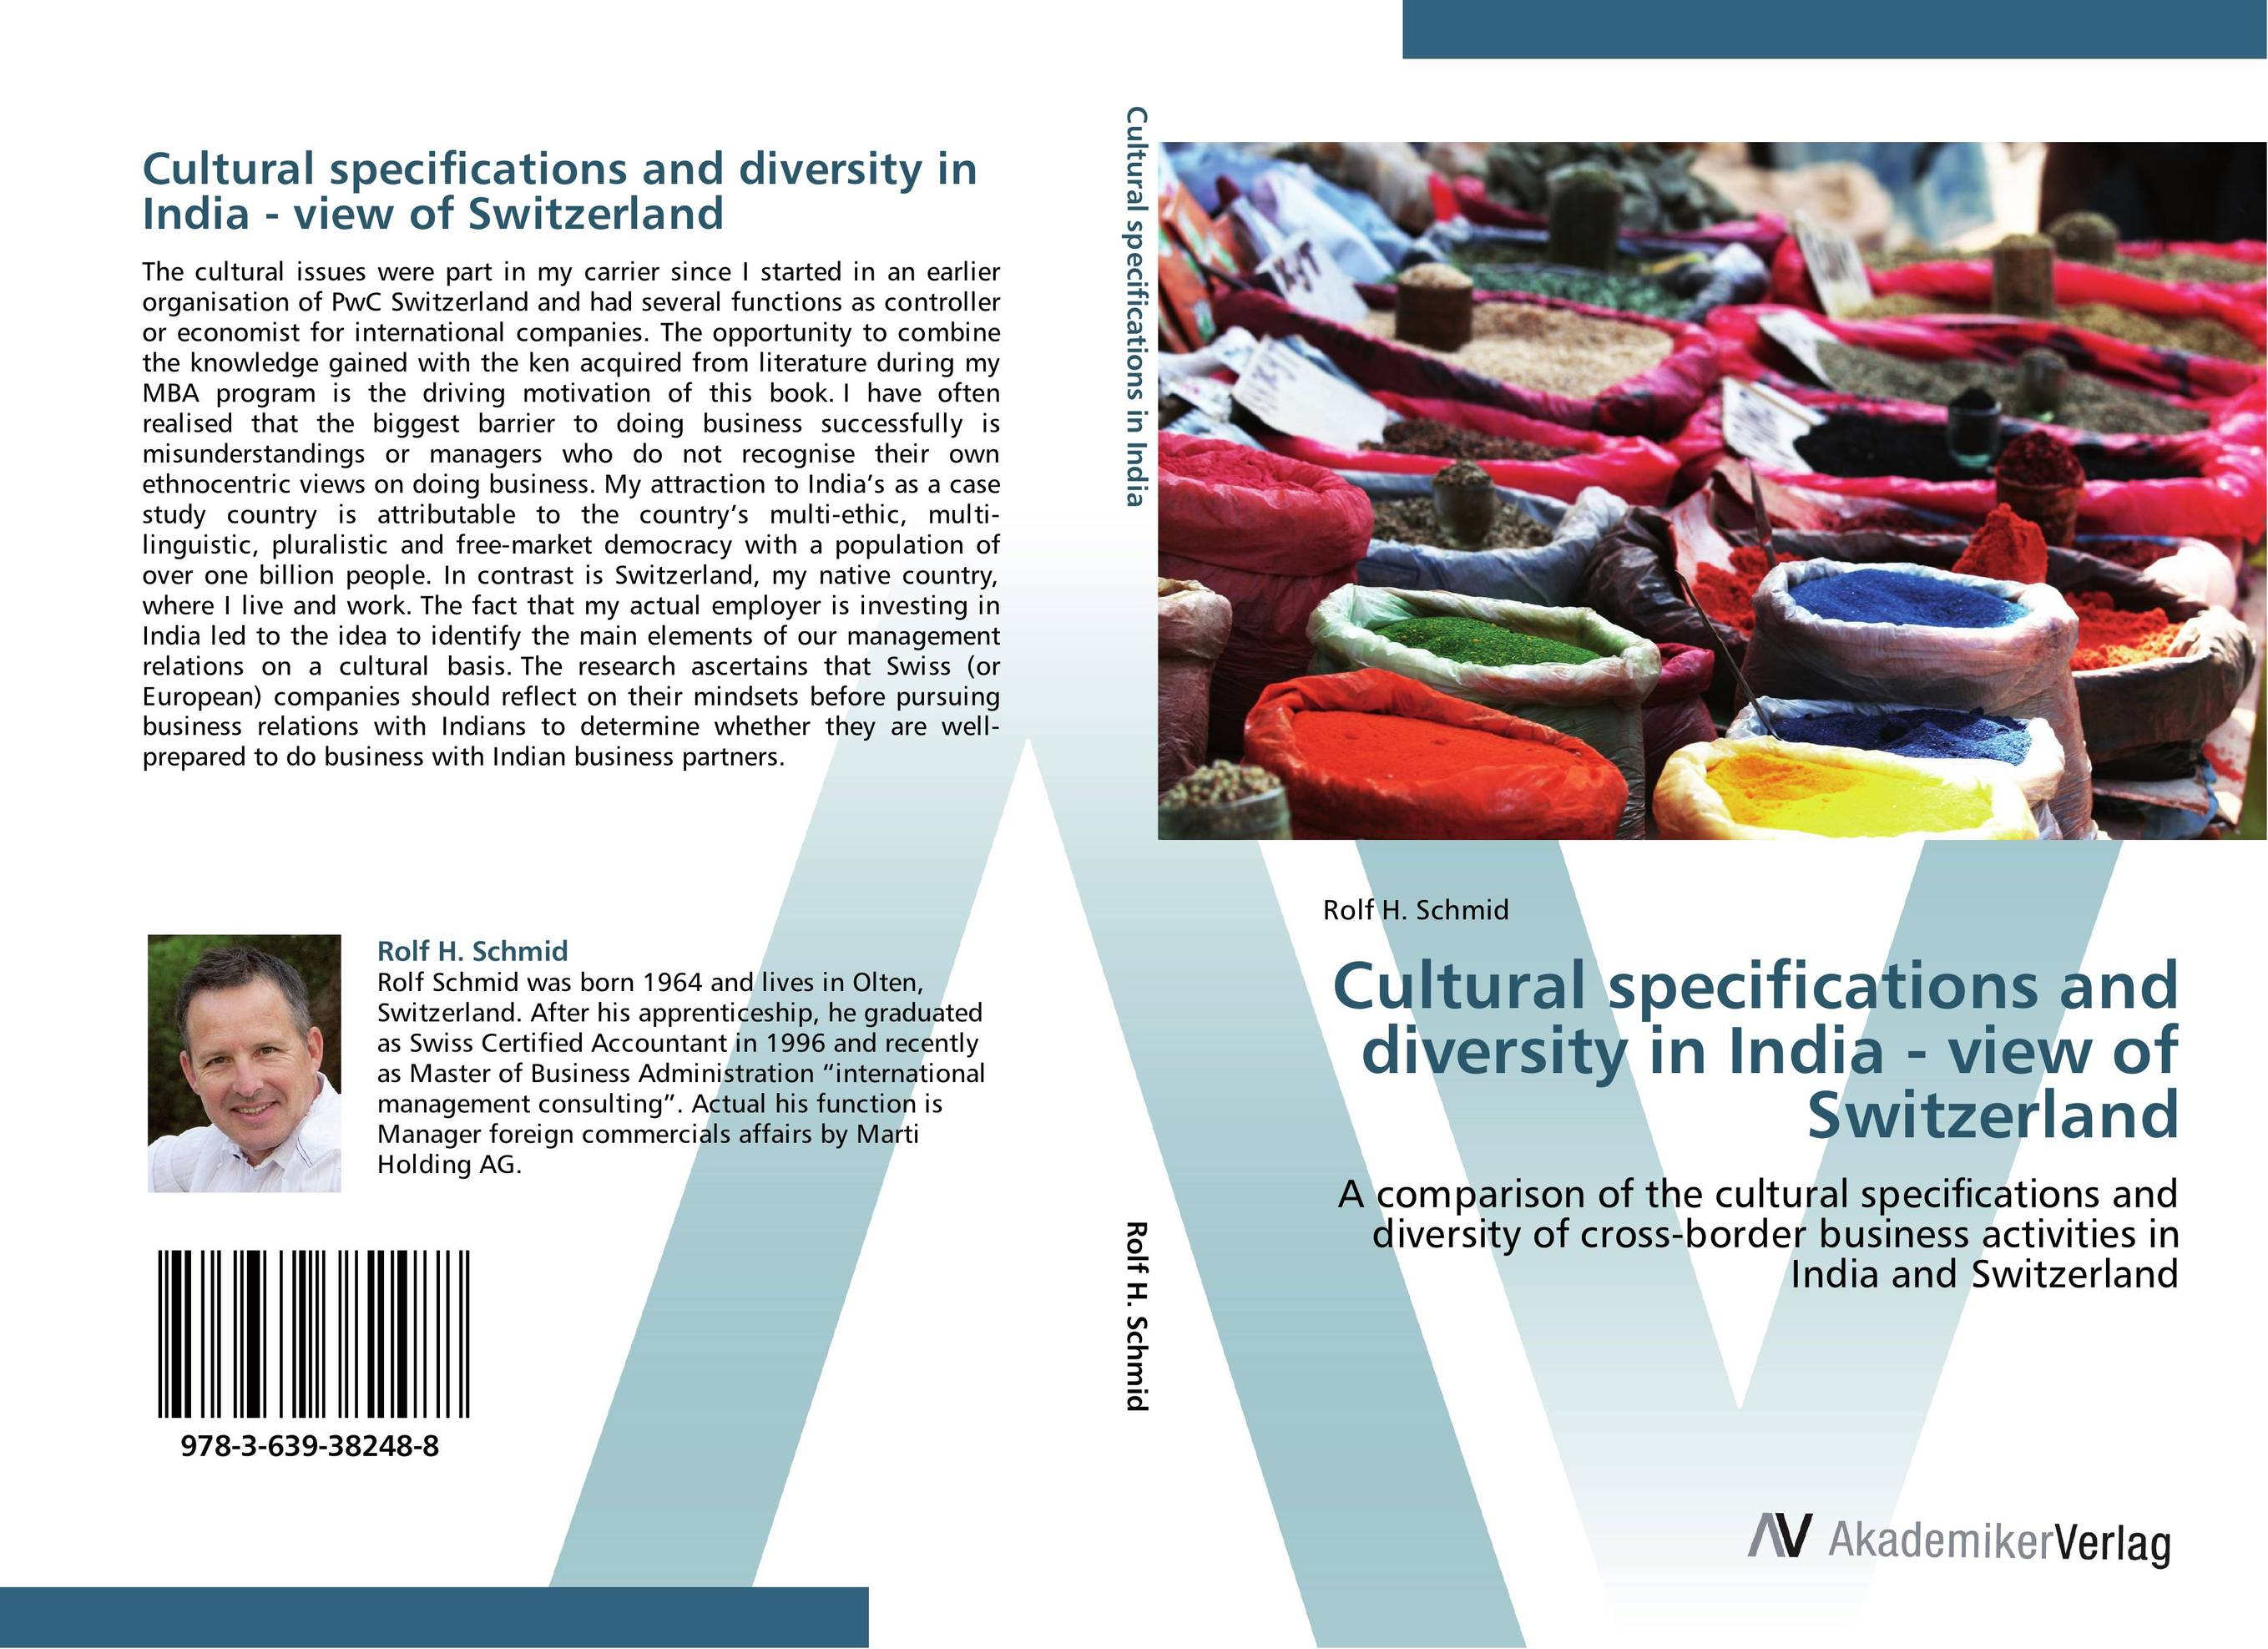 Cultural specifications and diversity in India - view of Switzerland on my own